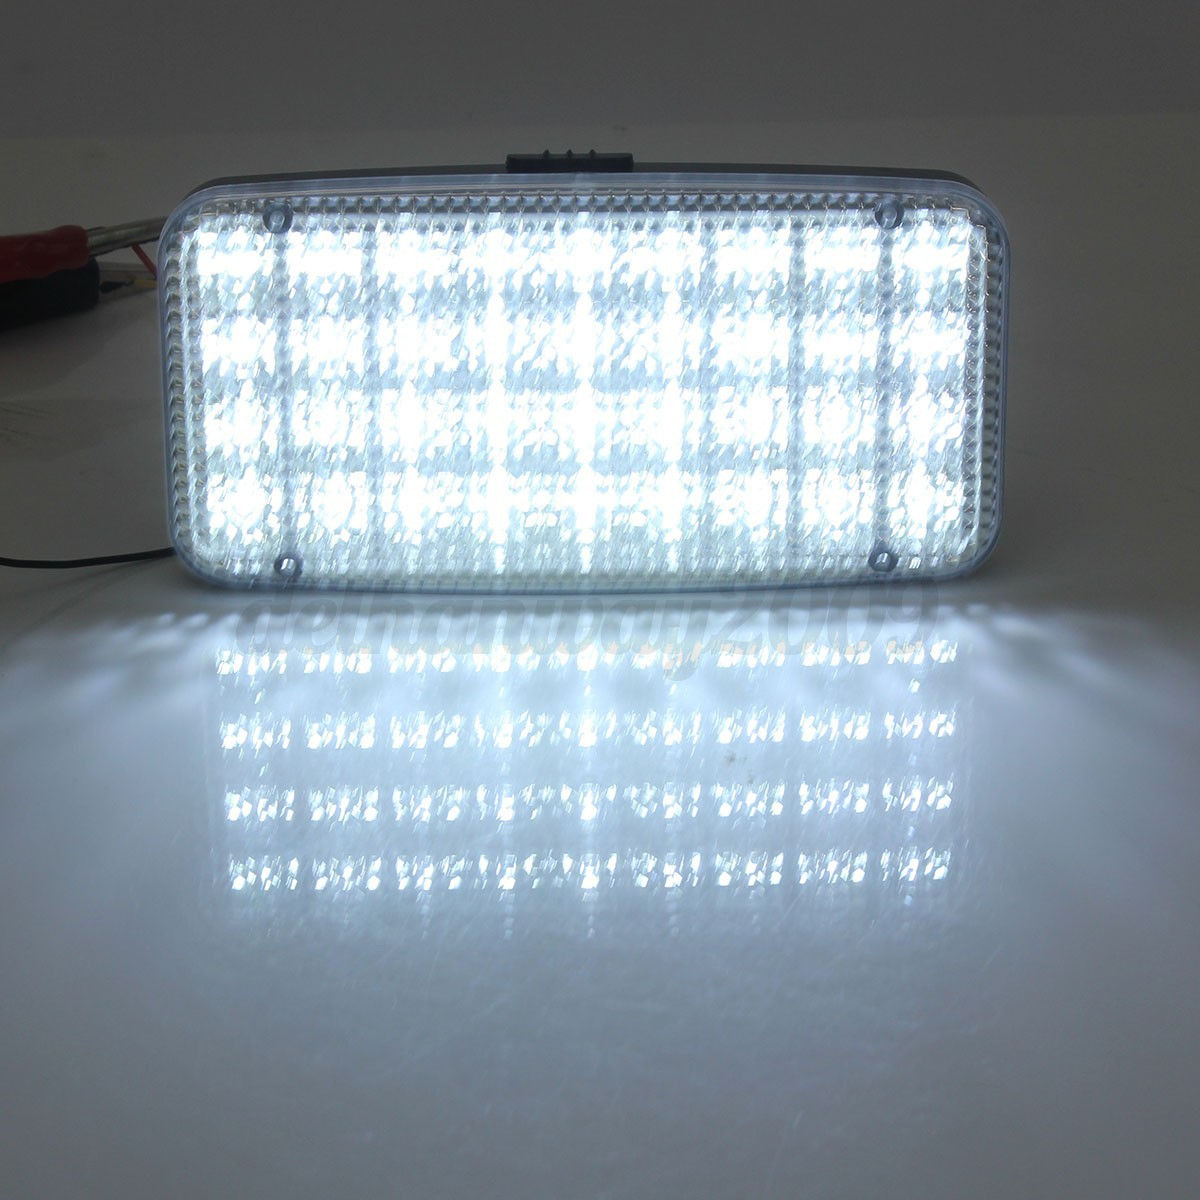 Auto Interieur Lamp 12v 36 White Led Ceiling Dome Roof Interior Light Lamp For